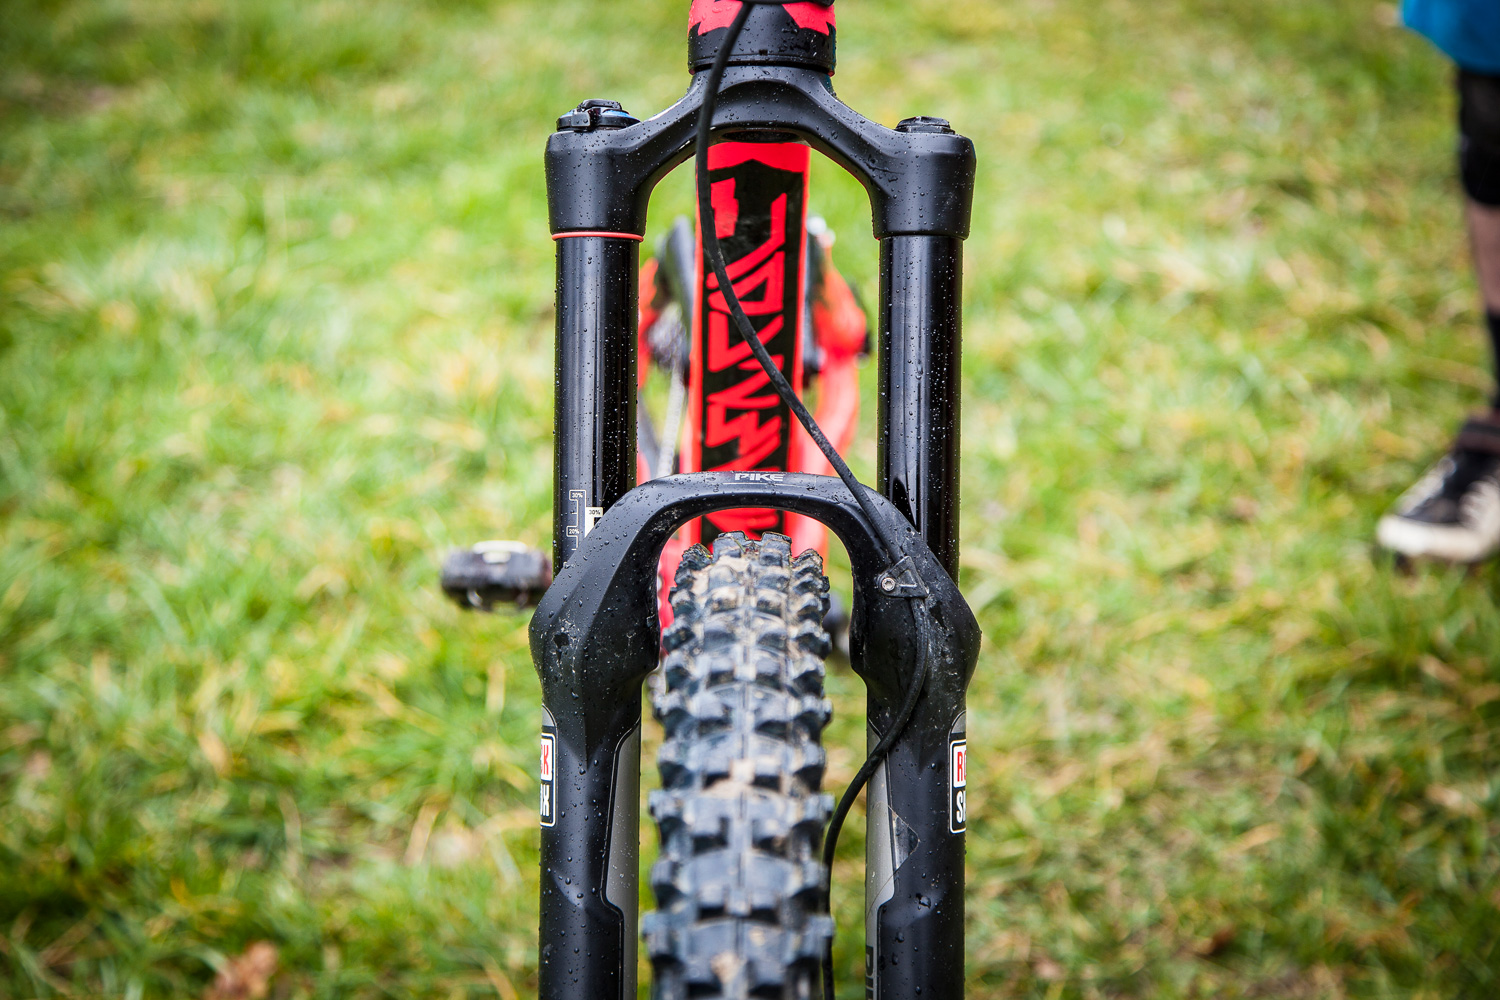 Fox 36 vs Rockshox Pike - Round 2